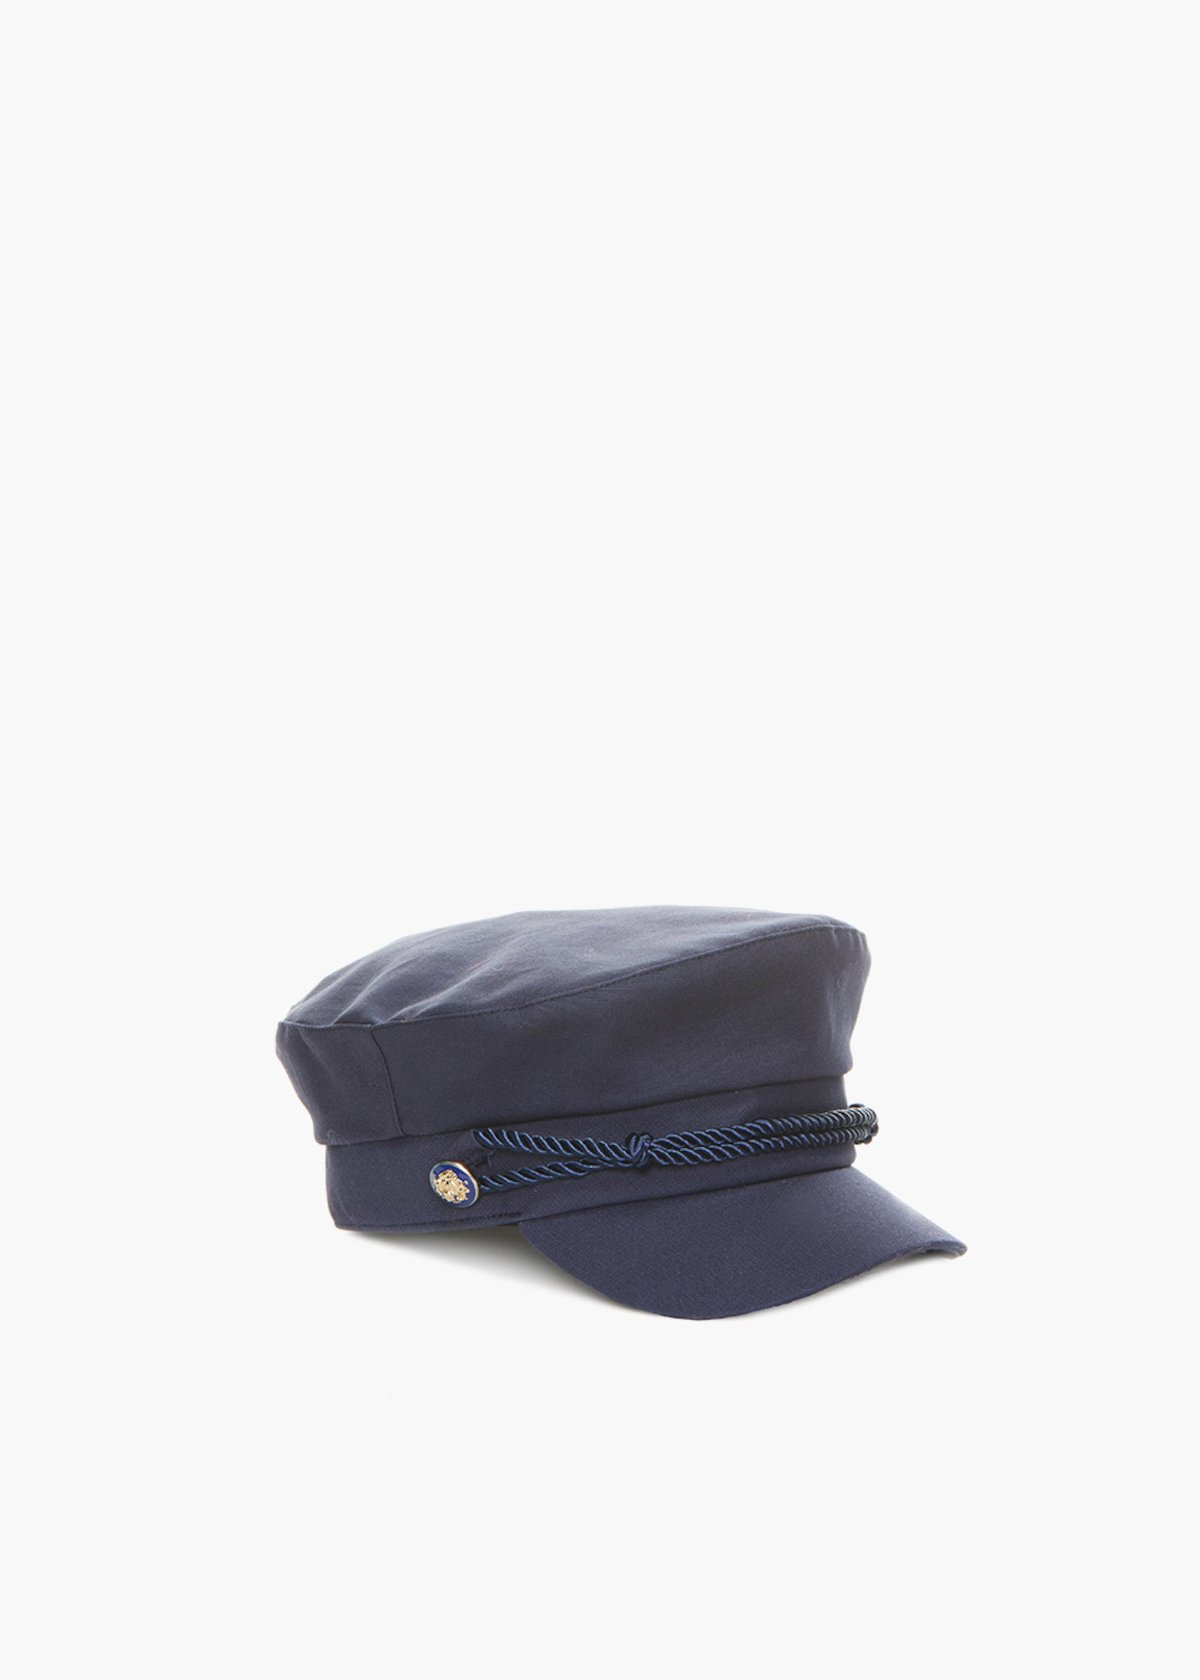 Cappello Canva modello basco - Medium Blue - Donna - Immagine categoria